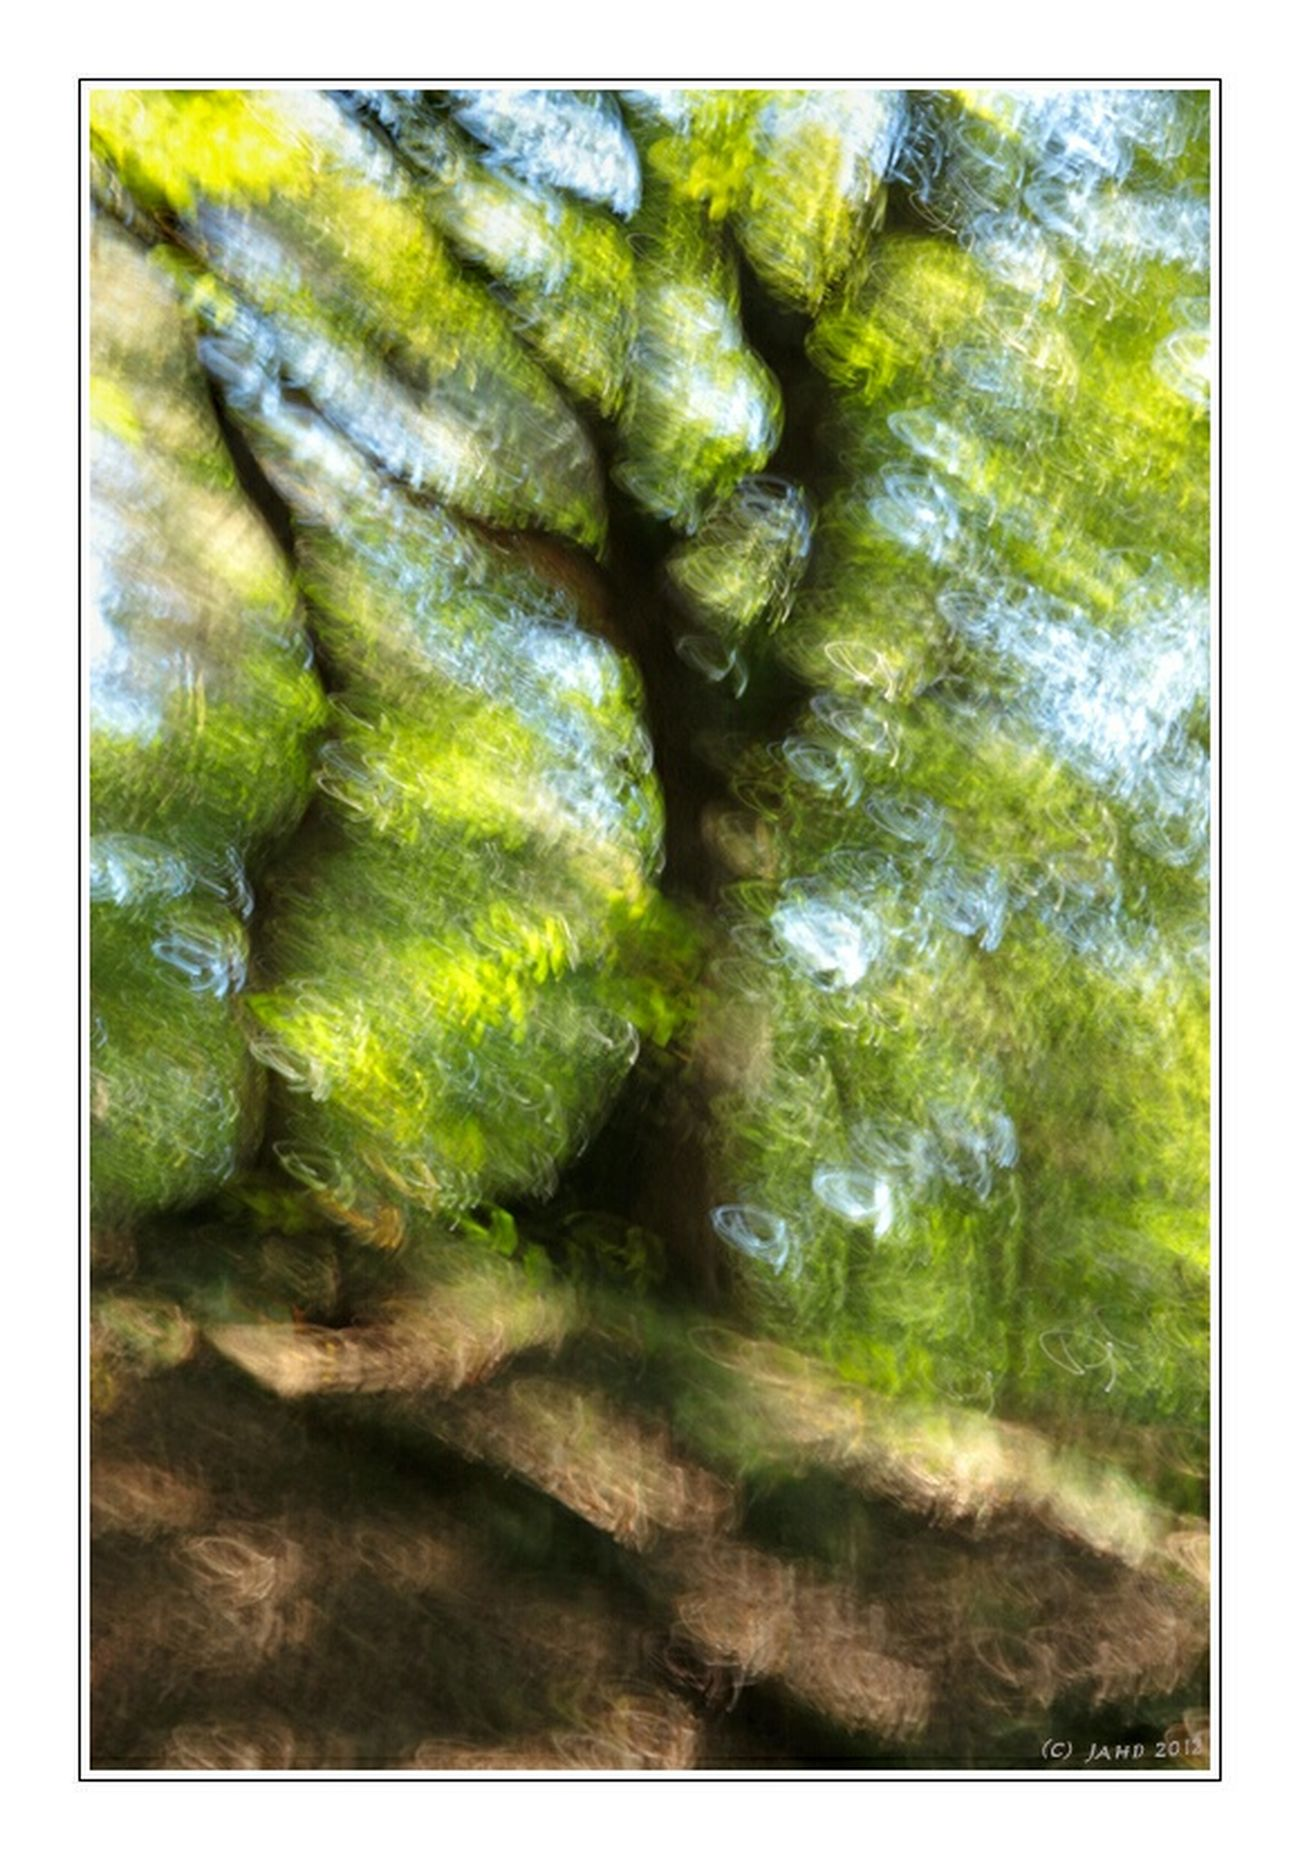 Imressionistic trees Trees Tree Treescollection Impressionism Impressionen Impression Woods Experiment Experimental Experimenting... Green Greenery Nature_collection Nature Nature Photography Naturelovers Experiments Unscharf Unsharp Abstract Verwischt Verwischtes Bild Verwackelt Impressions Tree_collection